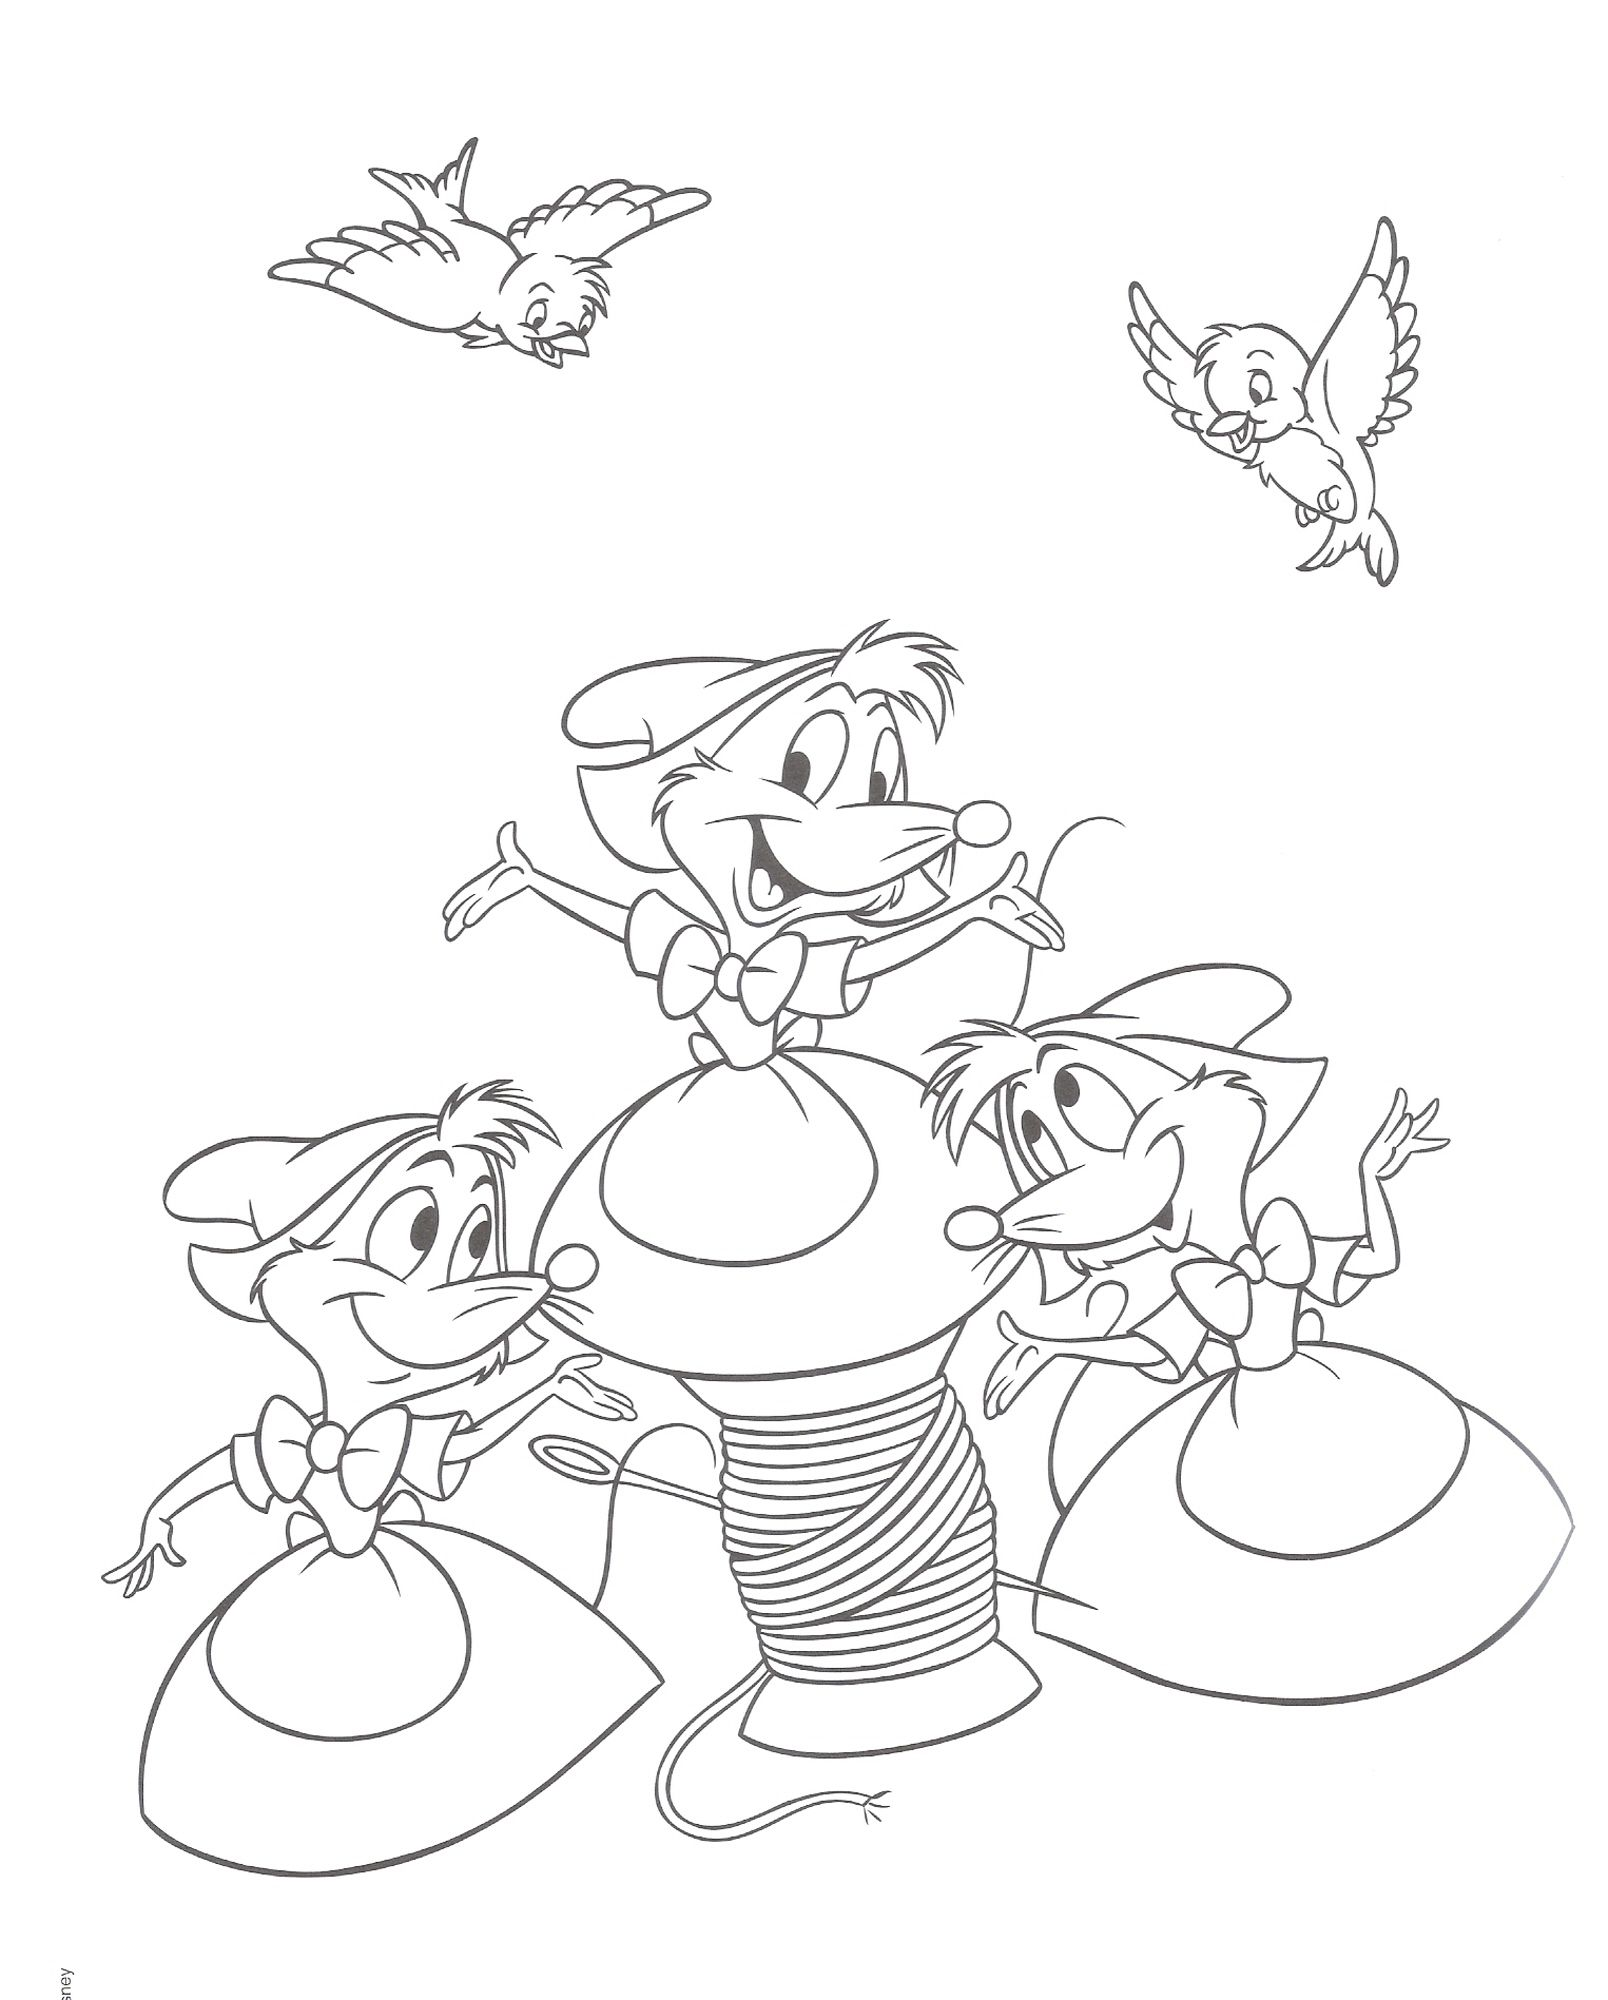 Cinderella coloring page with the mice | Happy Holidays ...